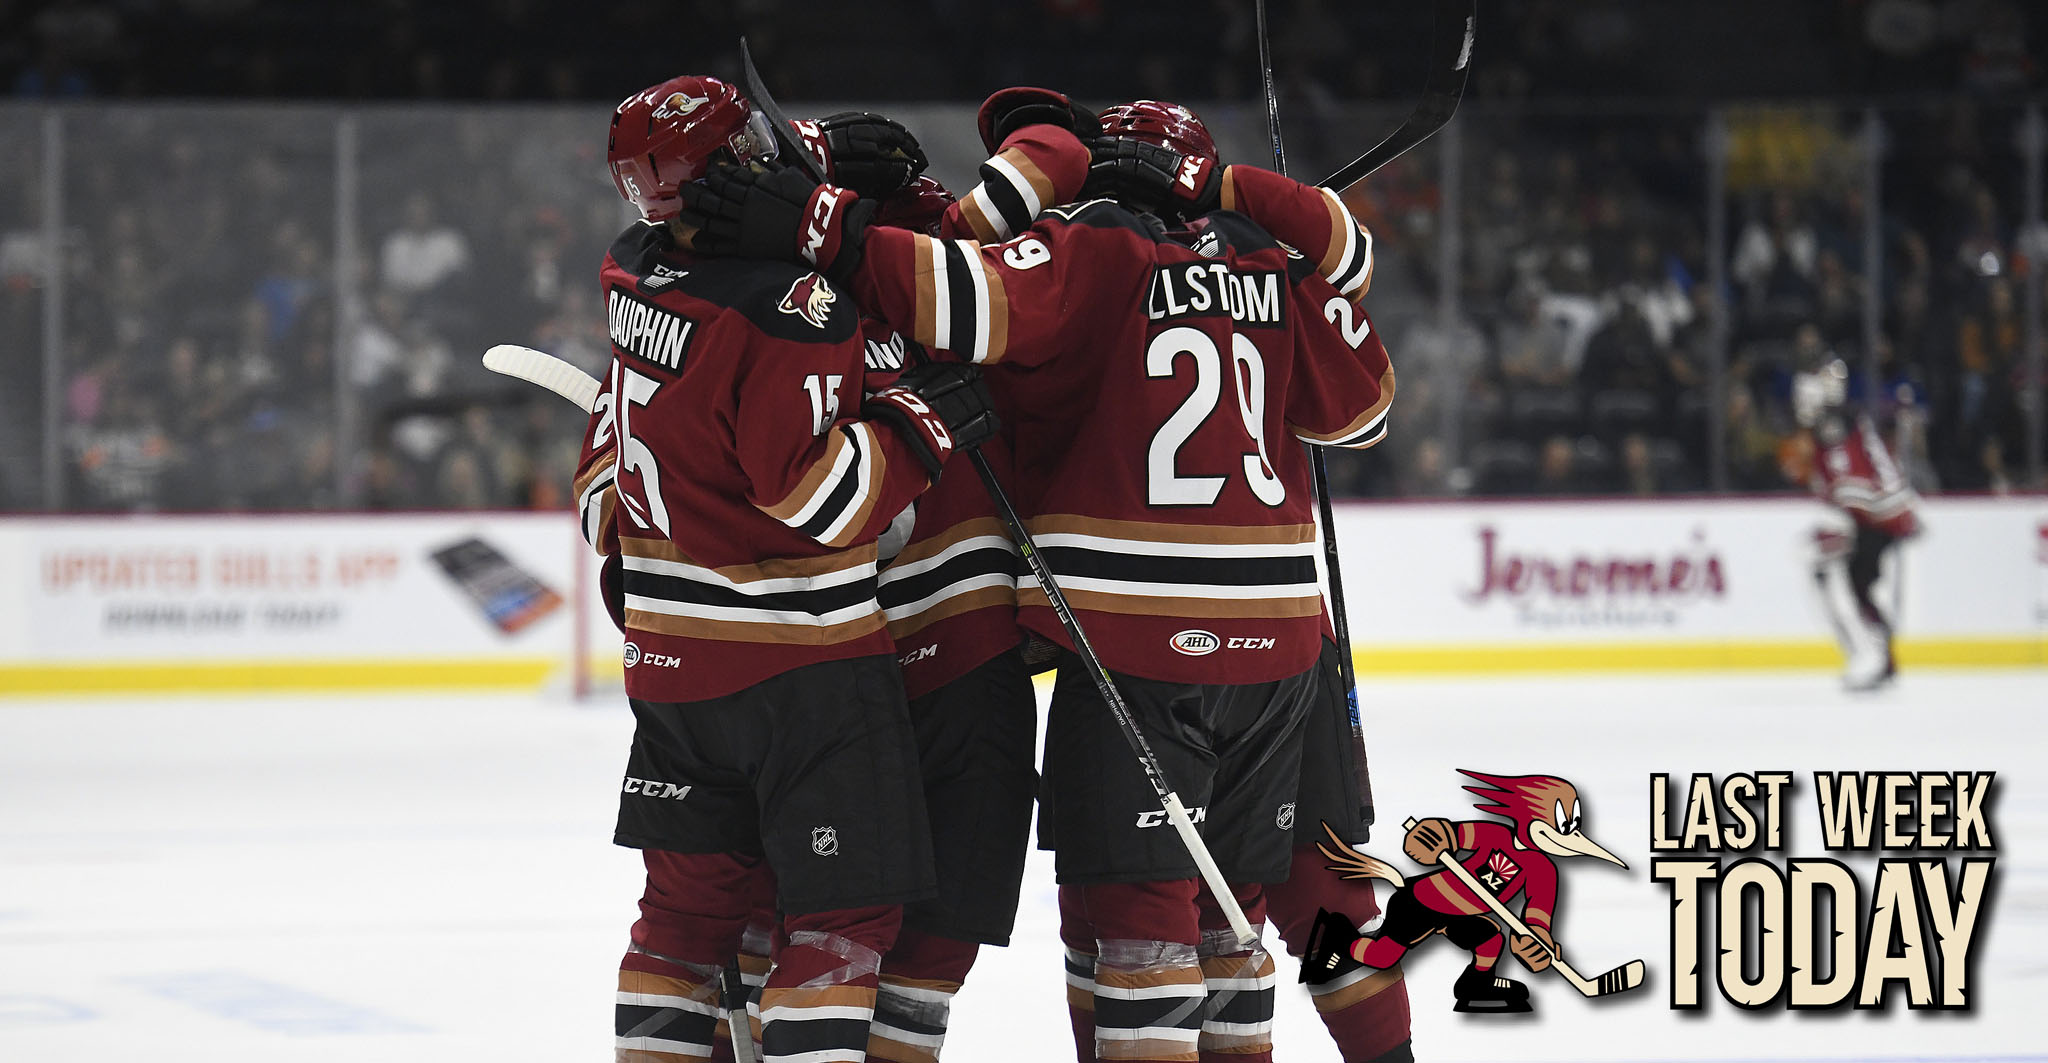 a234c6edbf7 The Official Website of the Tucson Roadrunners  What s Up